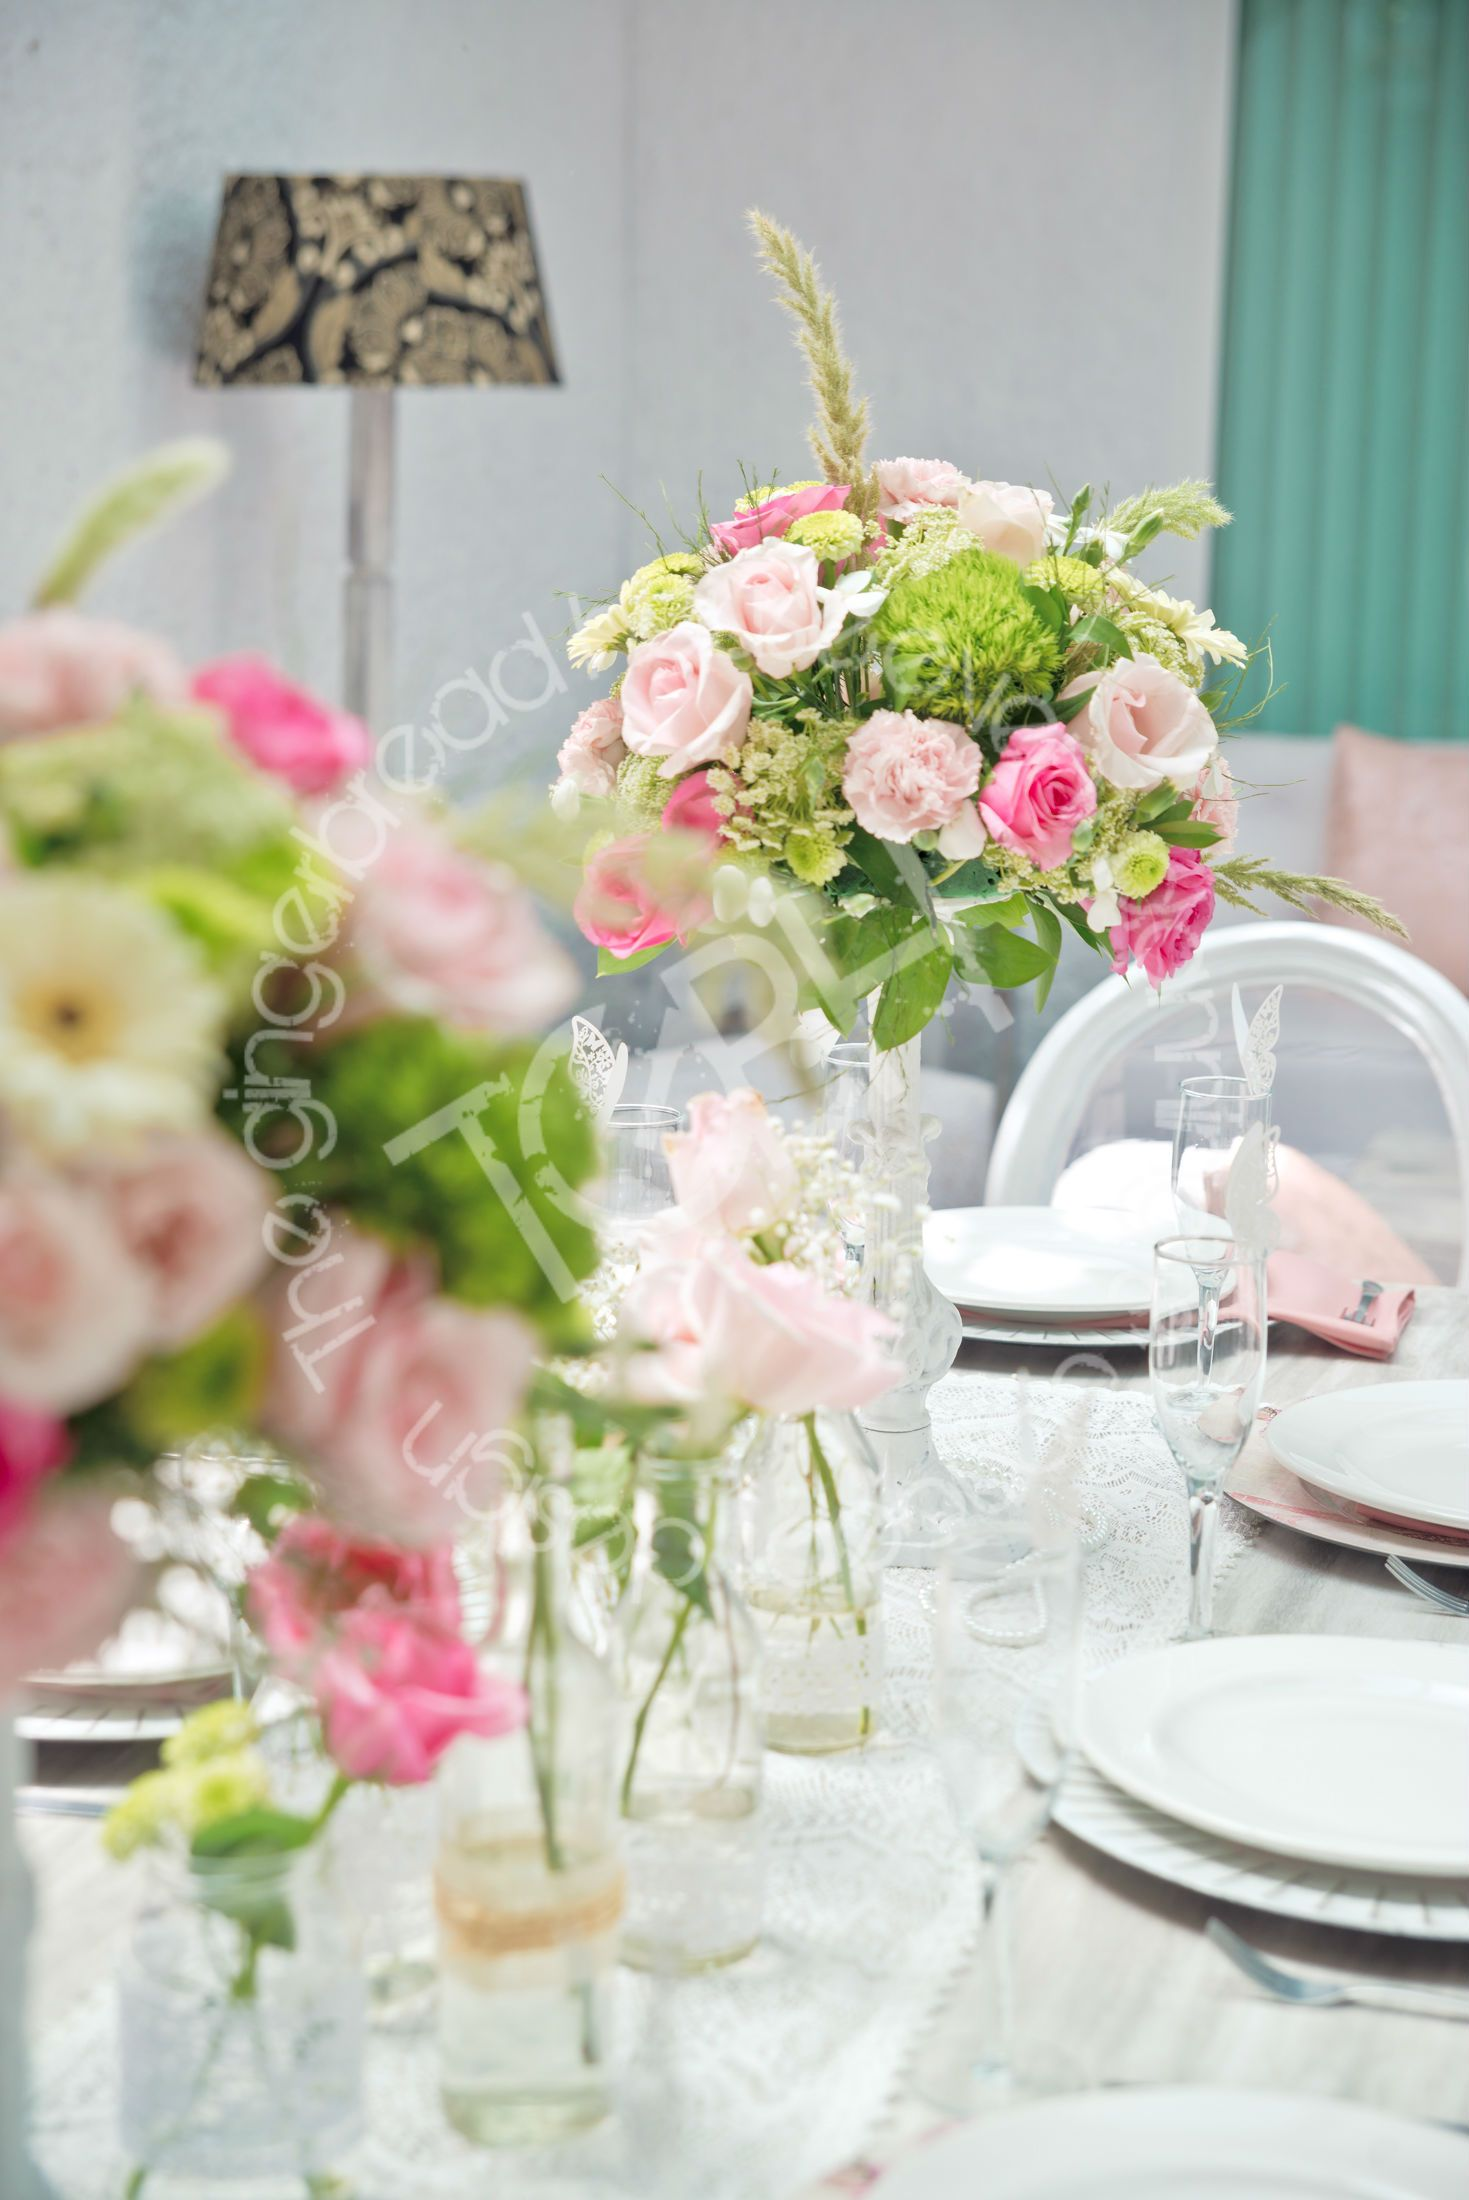 Shabby chic birthday party shabby chic tablescape flower shabby chic birthday party shabby chic tablescape flower centerpiece dhlflorist Image collections